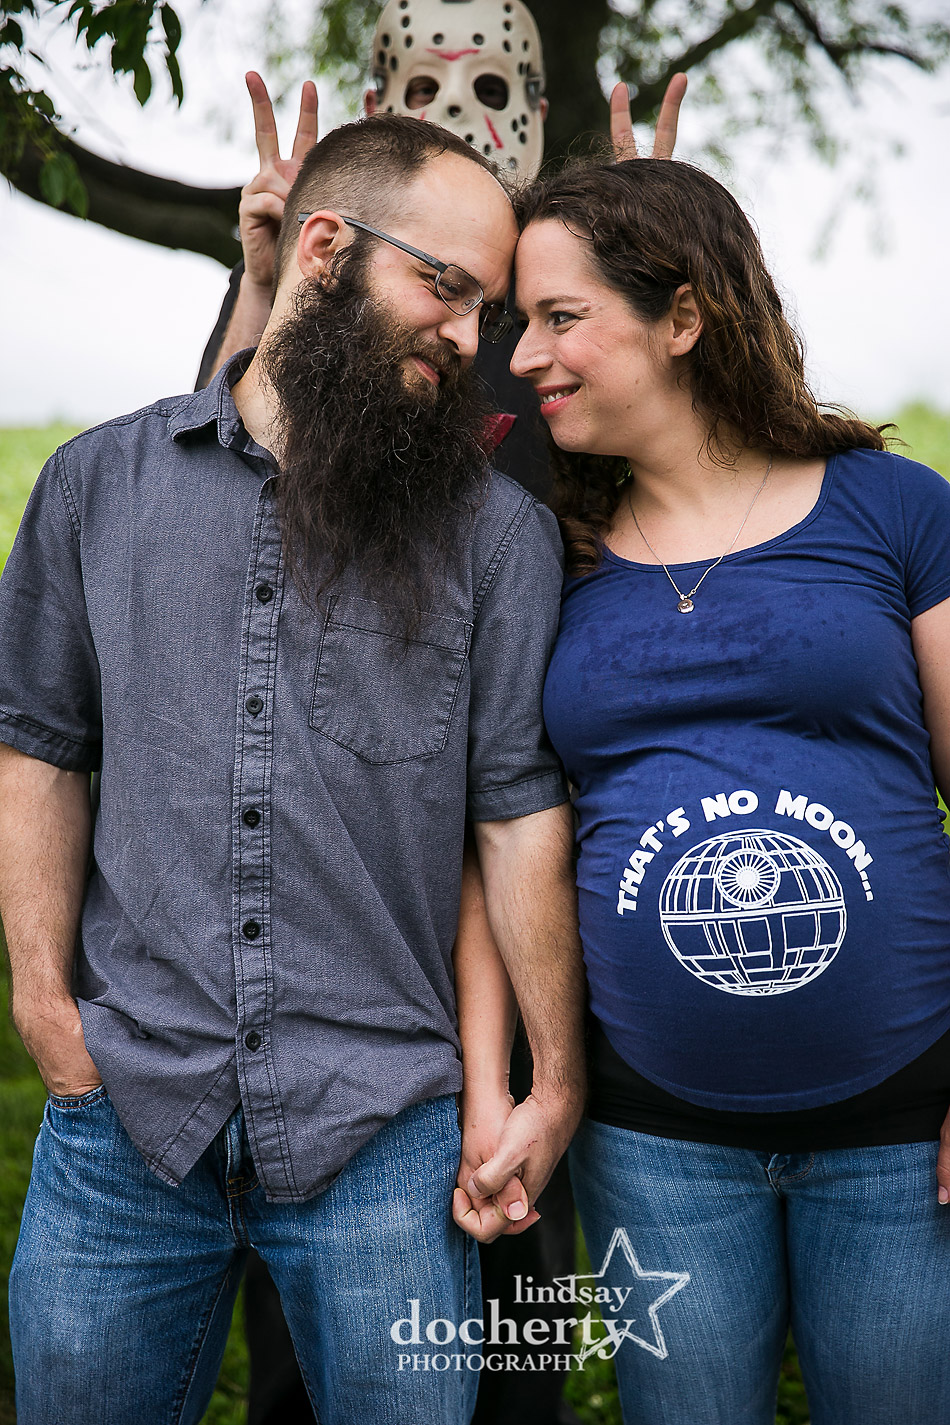 No place to hide at this horror-meets-geek maternity shoot guest starring Jason Voorhees